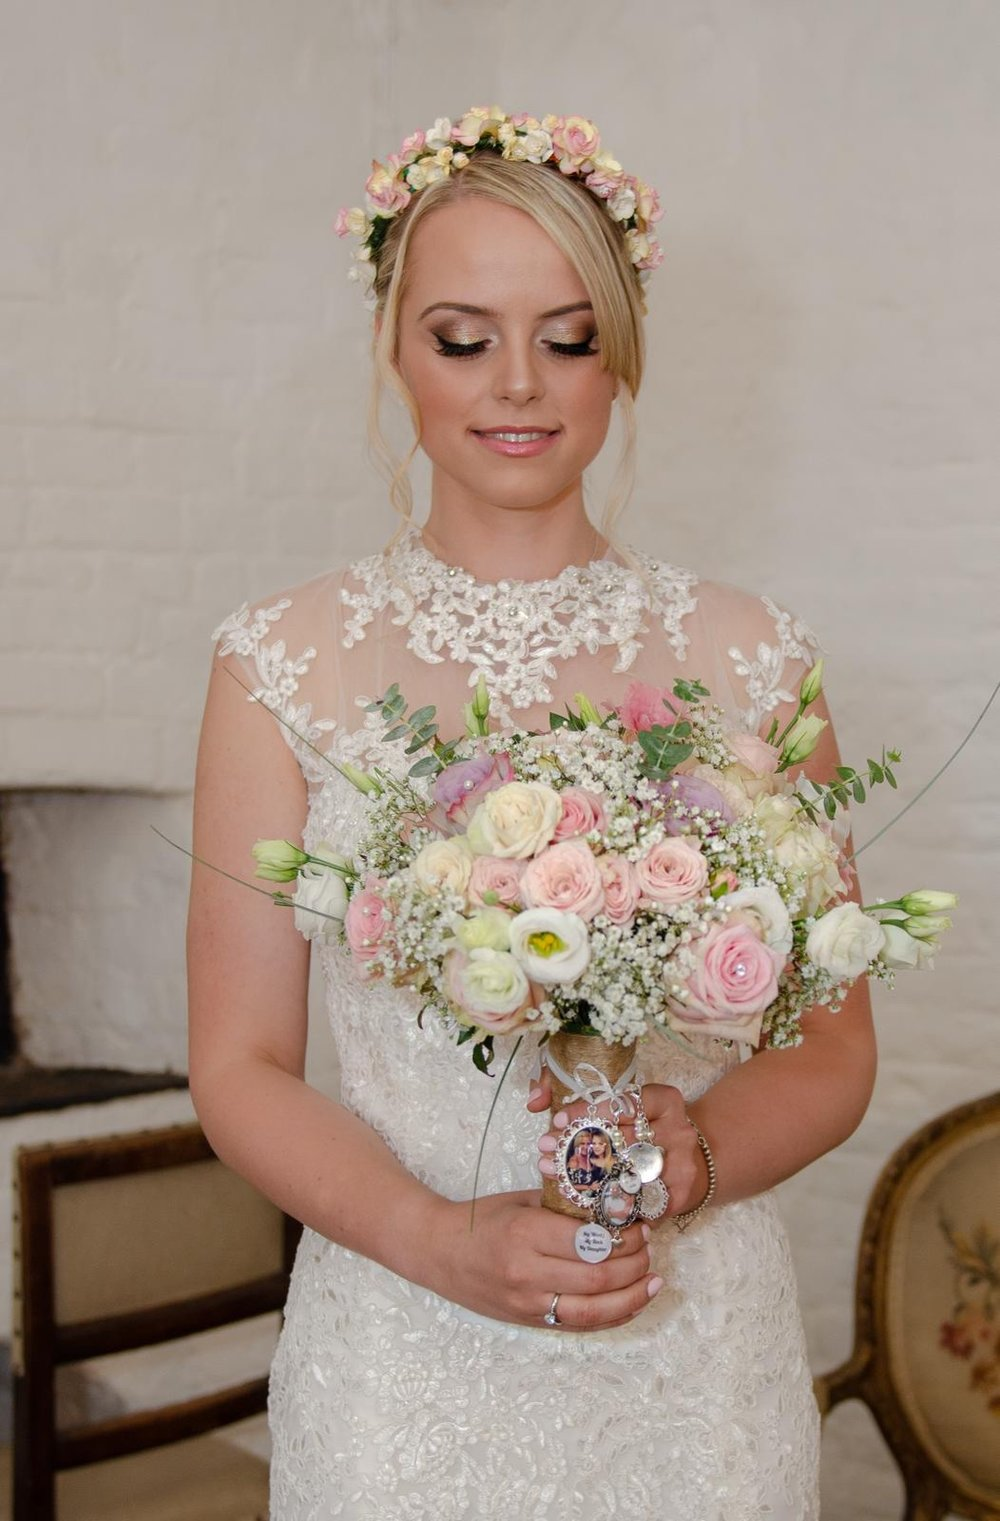 Bridal makeup with focus on the eyes using smokey golds and browns with signiture winged eyeliner